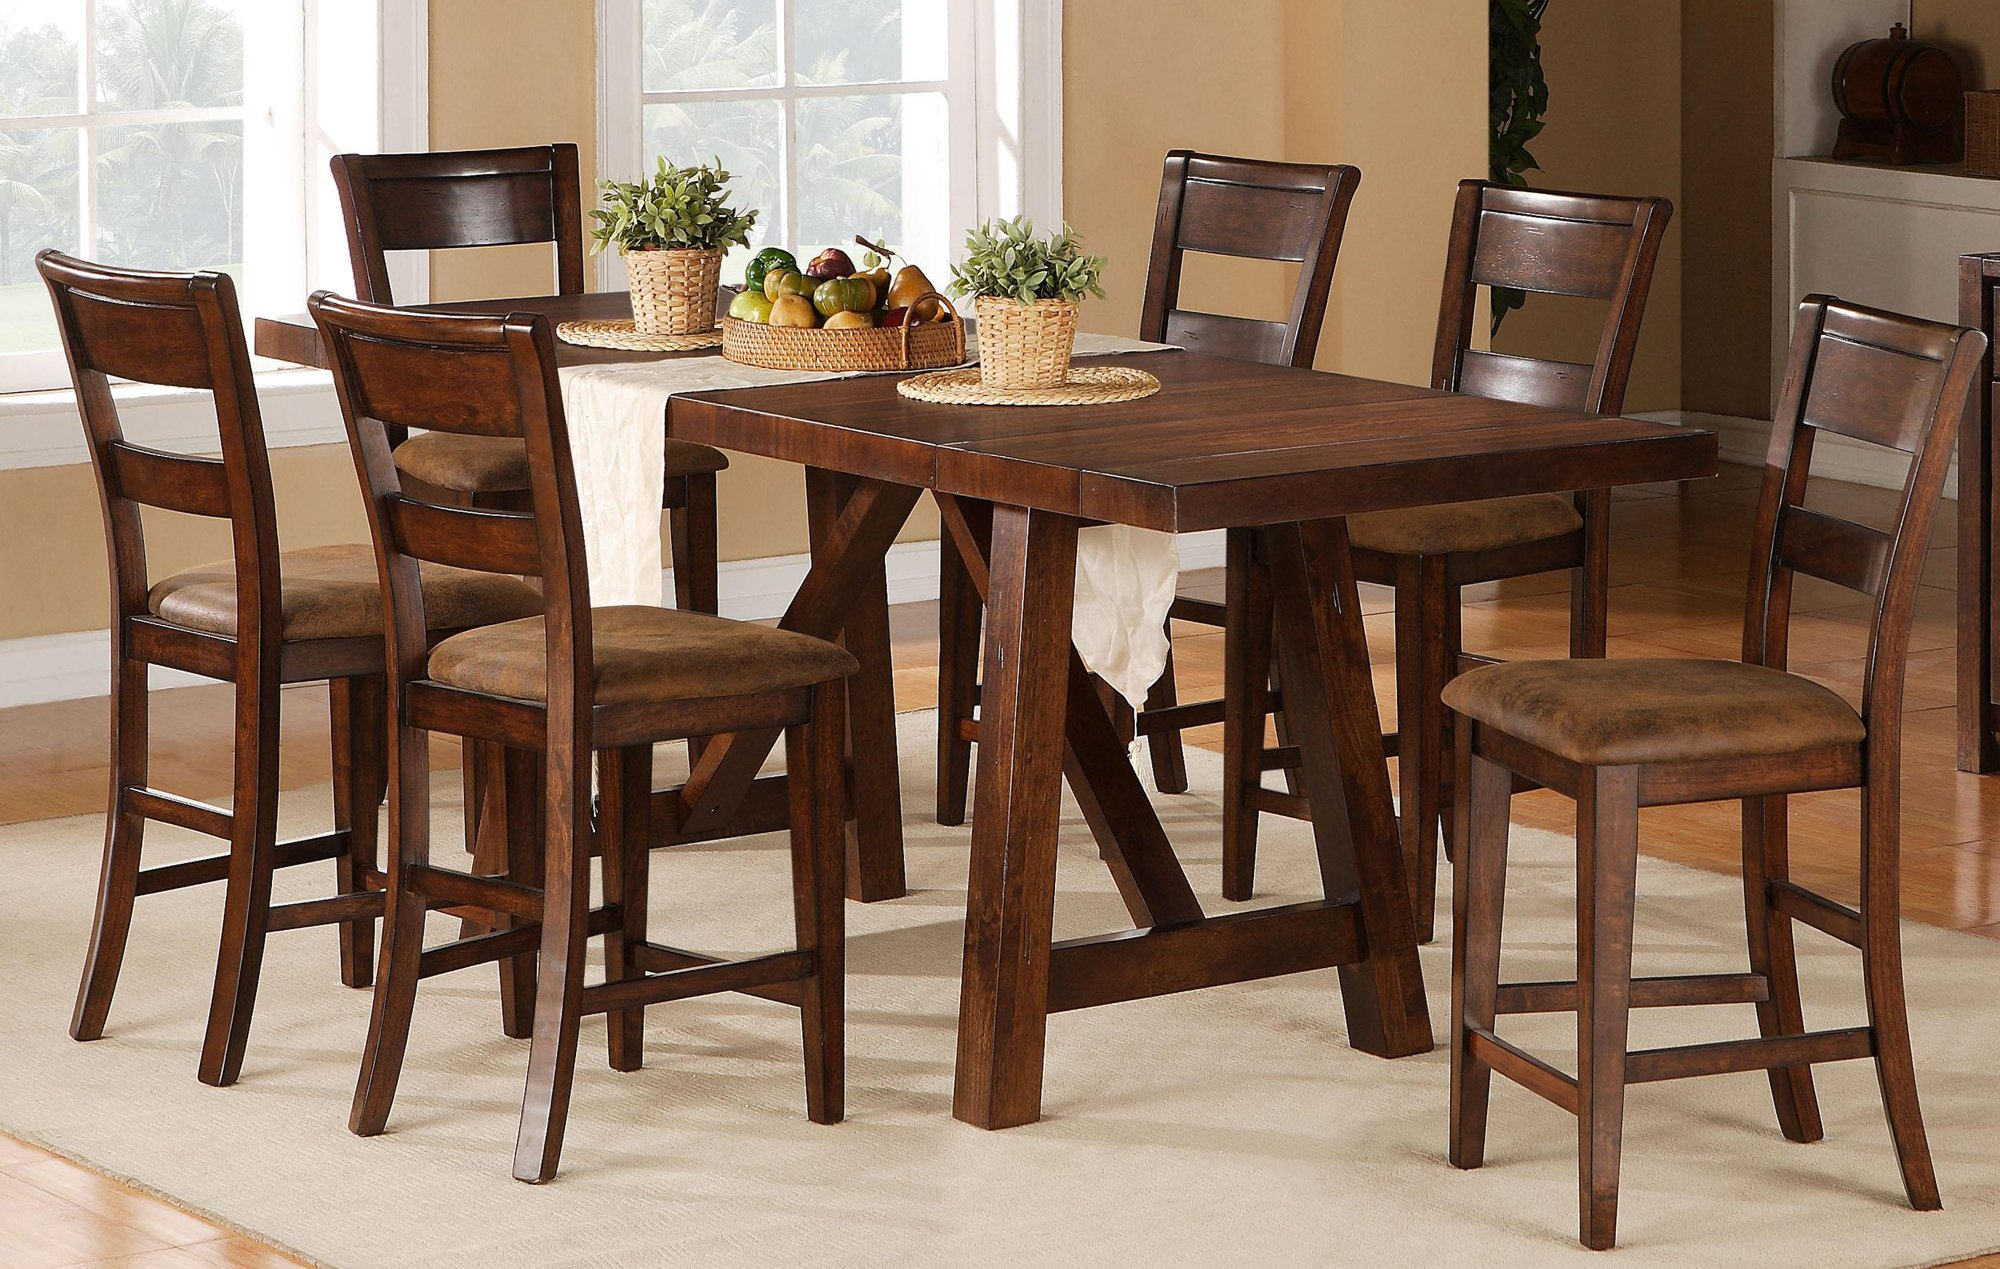 5 Piece Dining Set Transitional Veca Burnished Mango